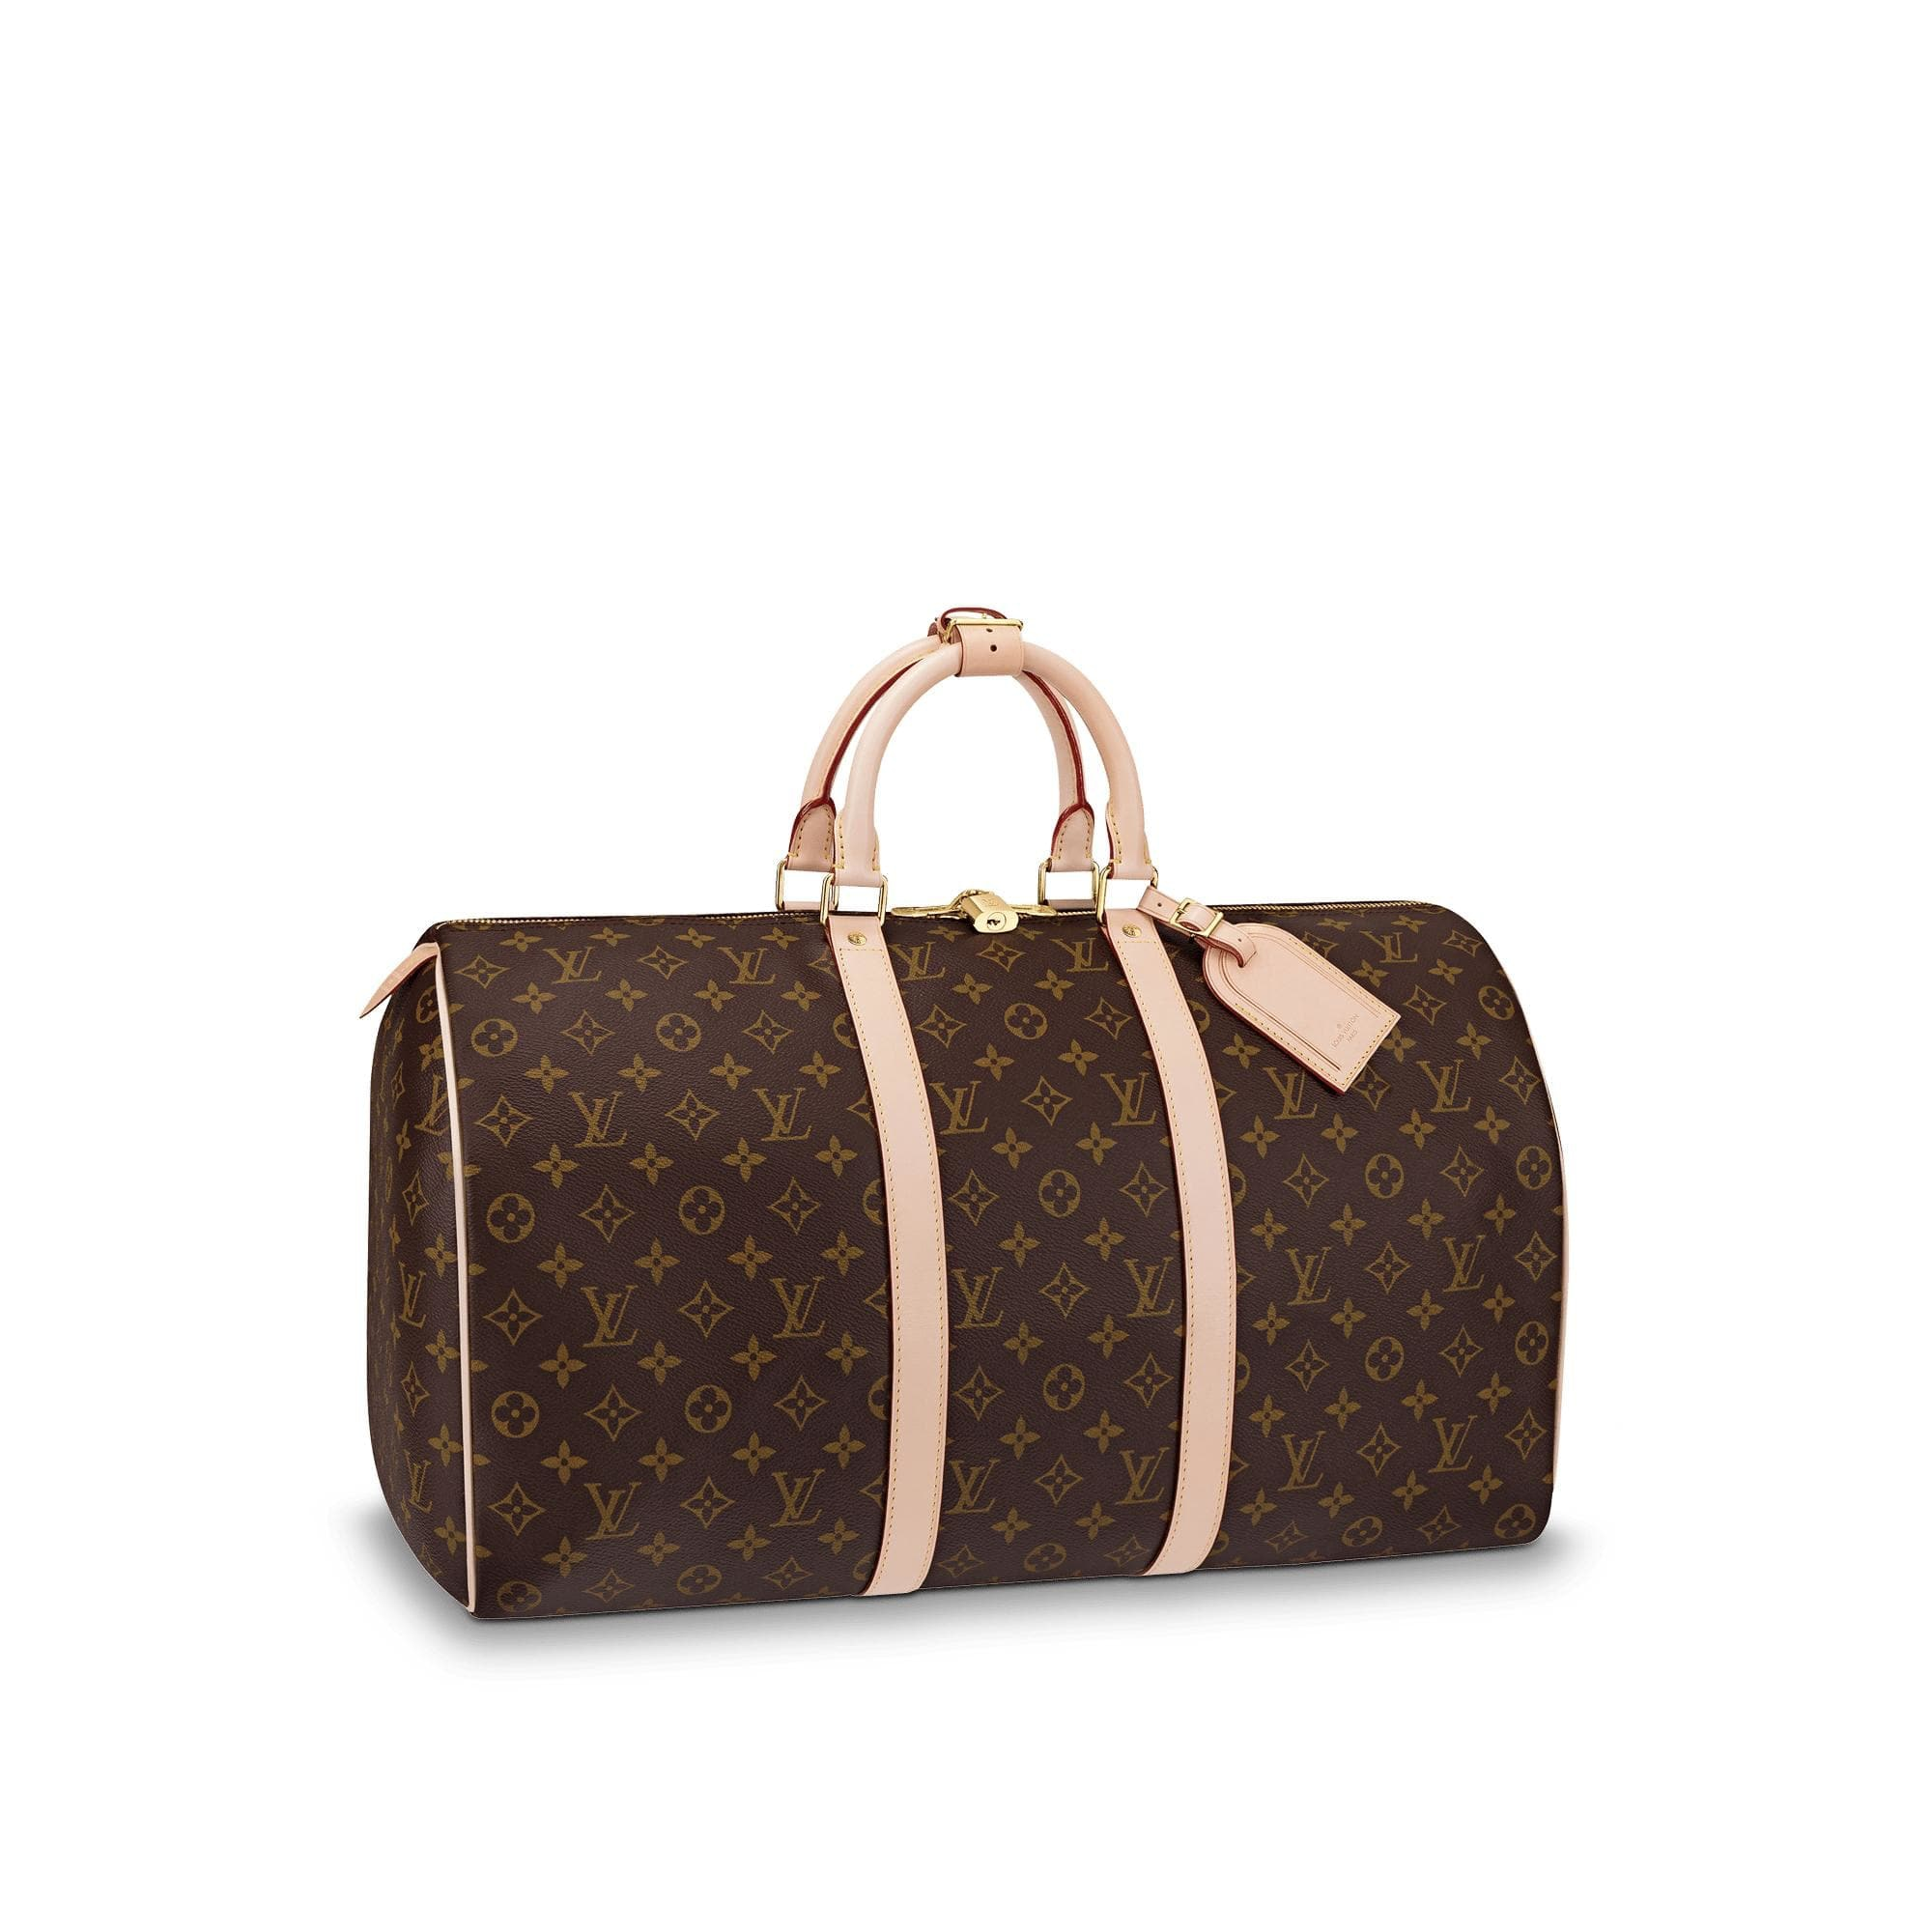 Louis Vuitton Keepall Monogram With Accessories 50 Brown